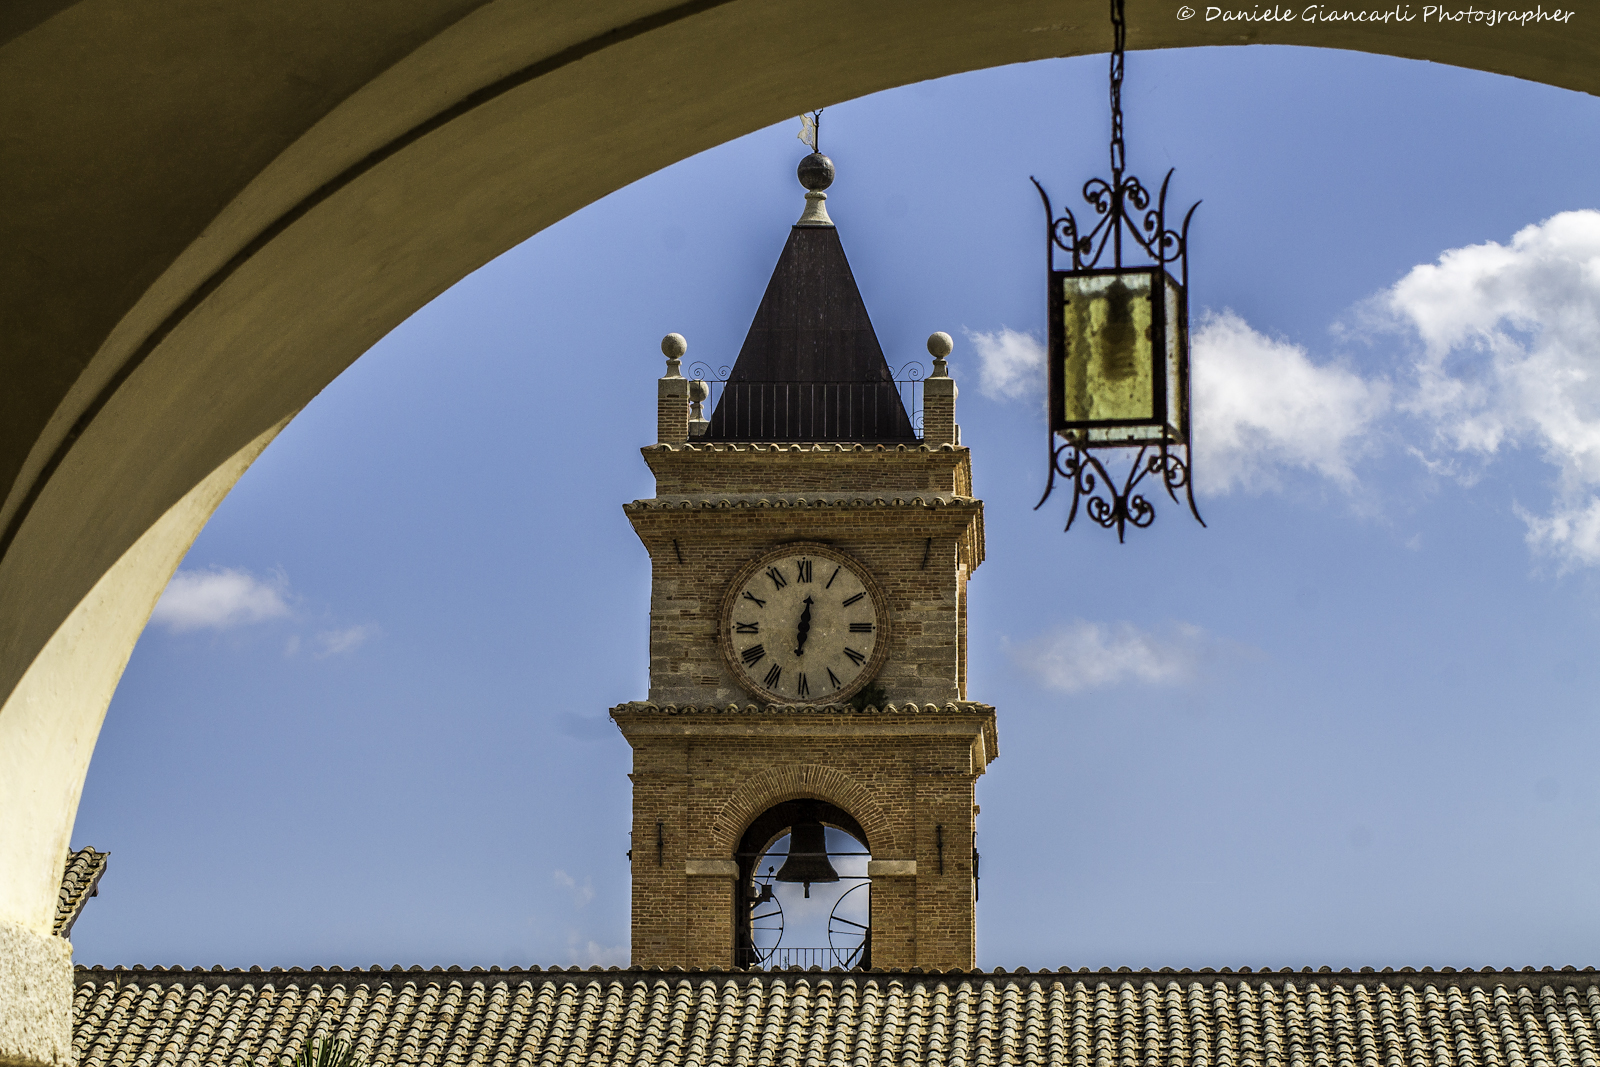 The bell tower under the arch...